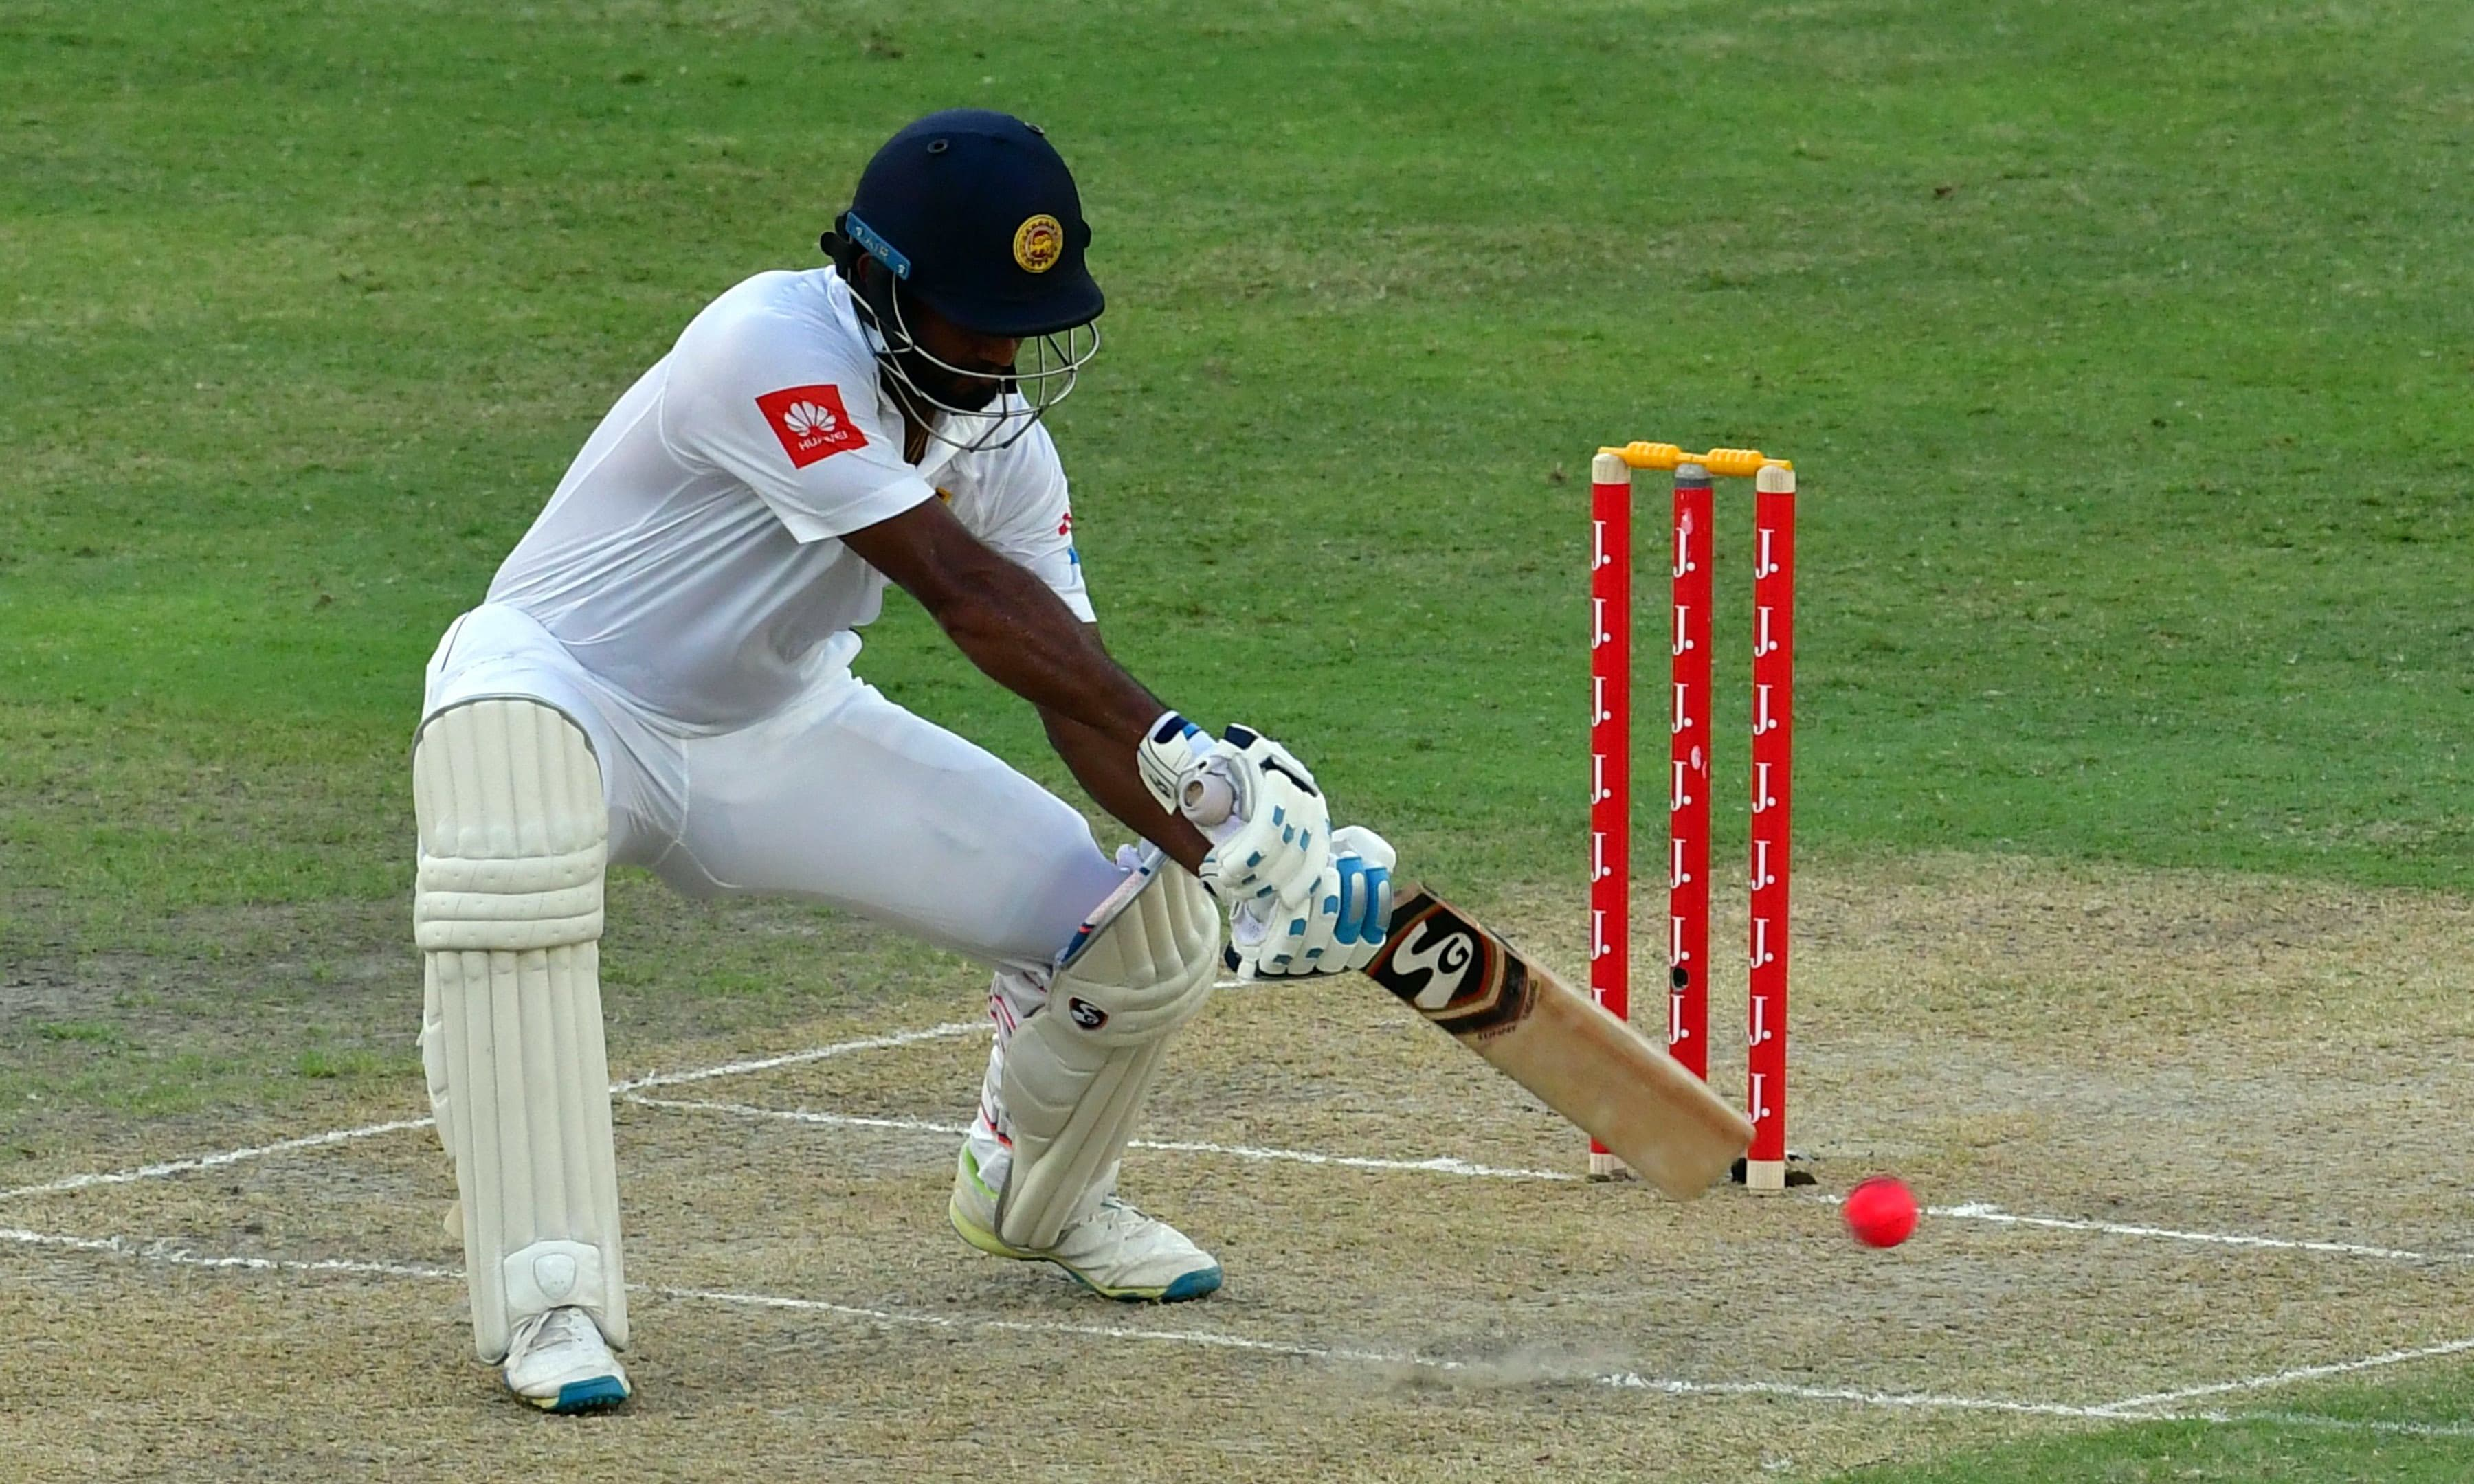 Can Sri Lanka defend 119?